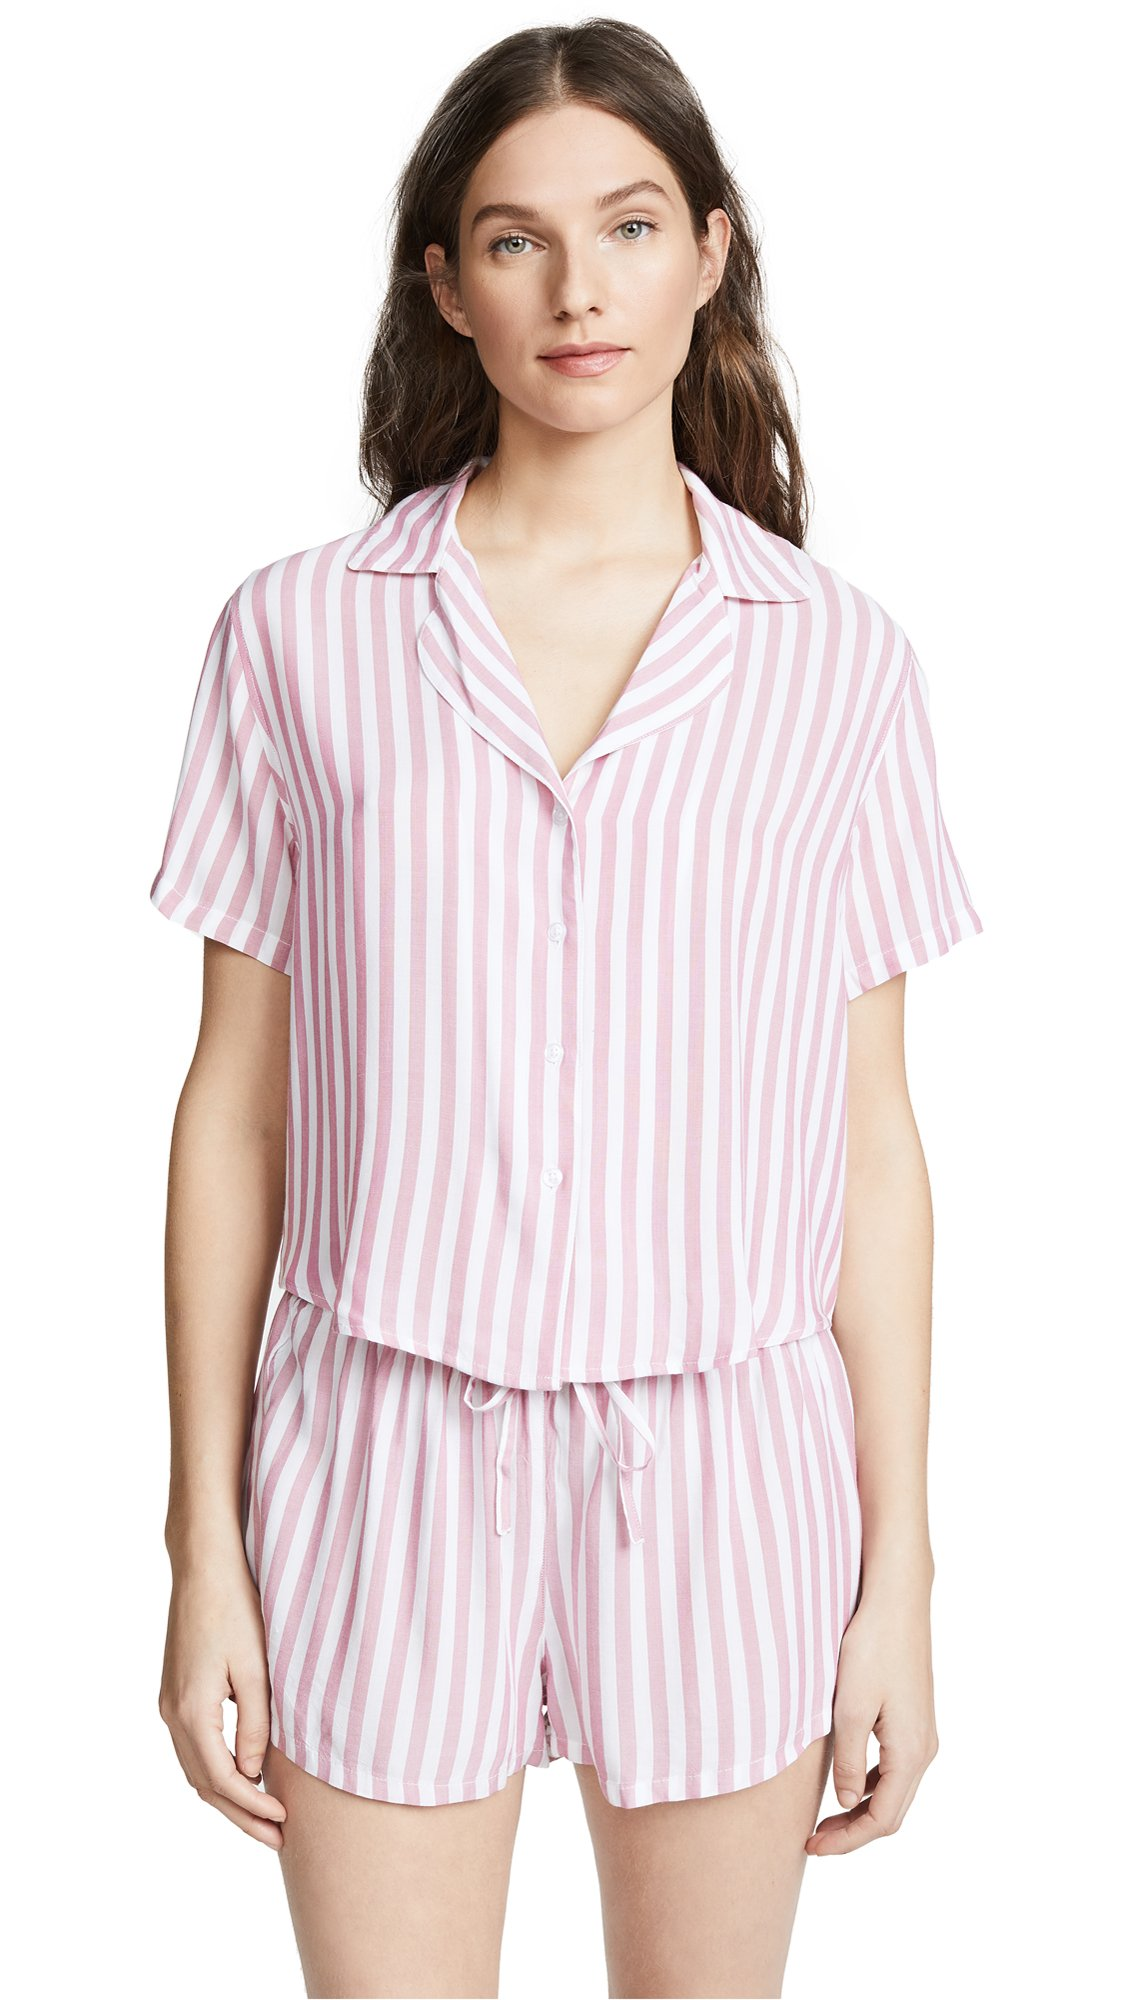 Rails Women's Short Sleeve Short PJ Set, Garnet White Stripe, X-Small